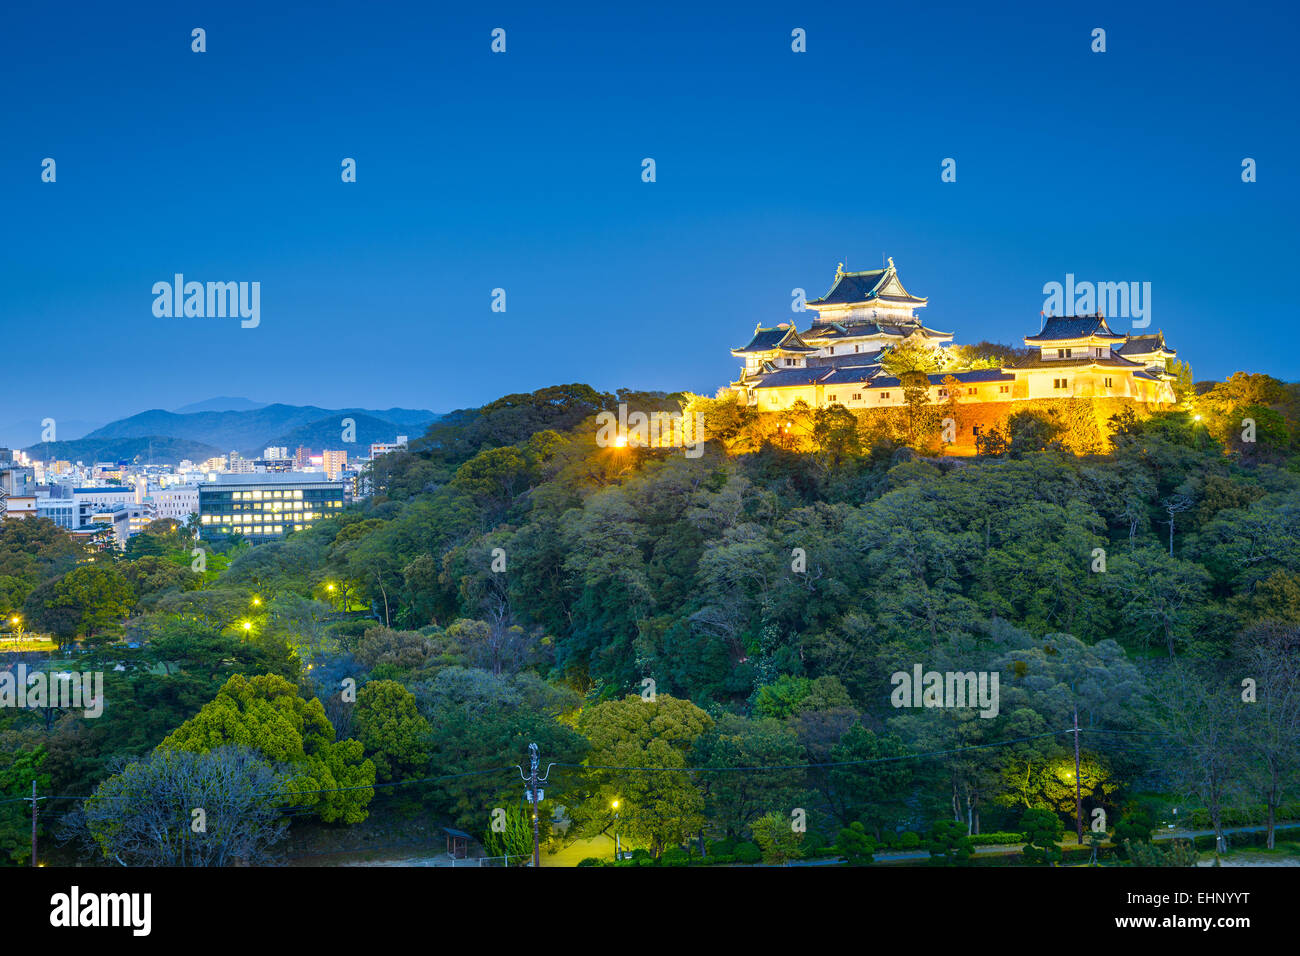 Wakayama, Japan Castle and downtown cityscape. - Stock Image